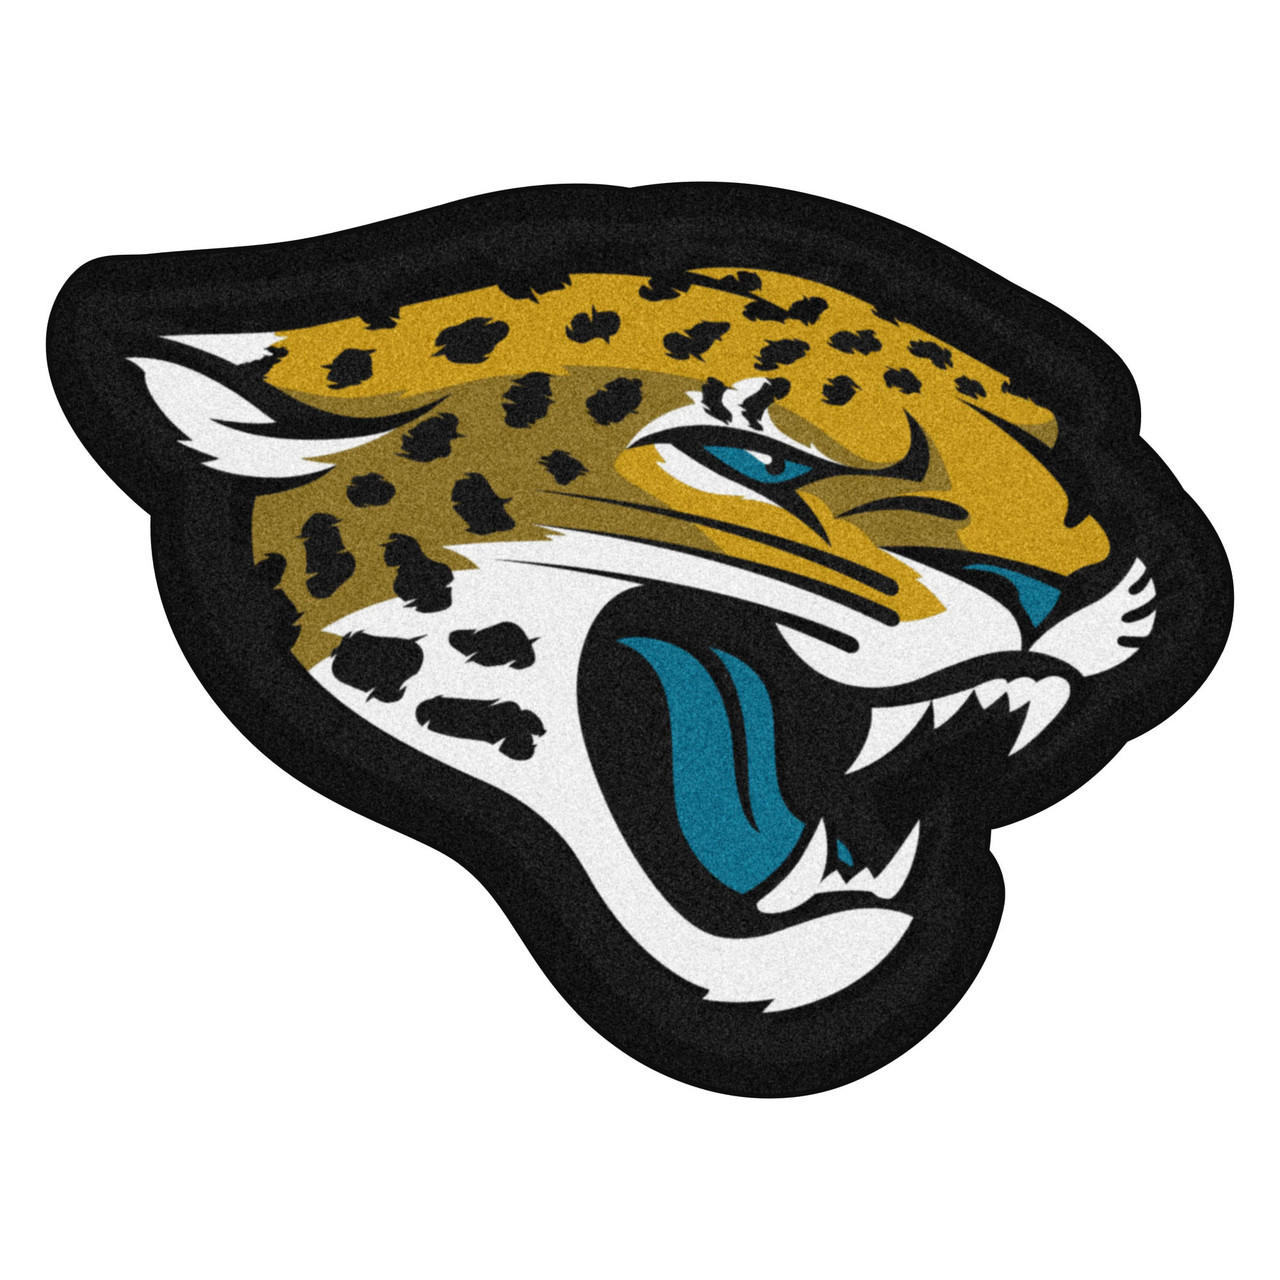 36 X 27 5 Yellow Black Nfl Jacksonville Jaguars Mascot Logo Area Rug Christmas Central